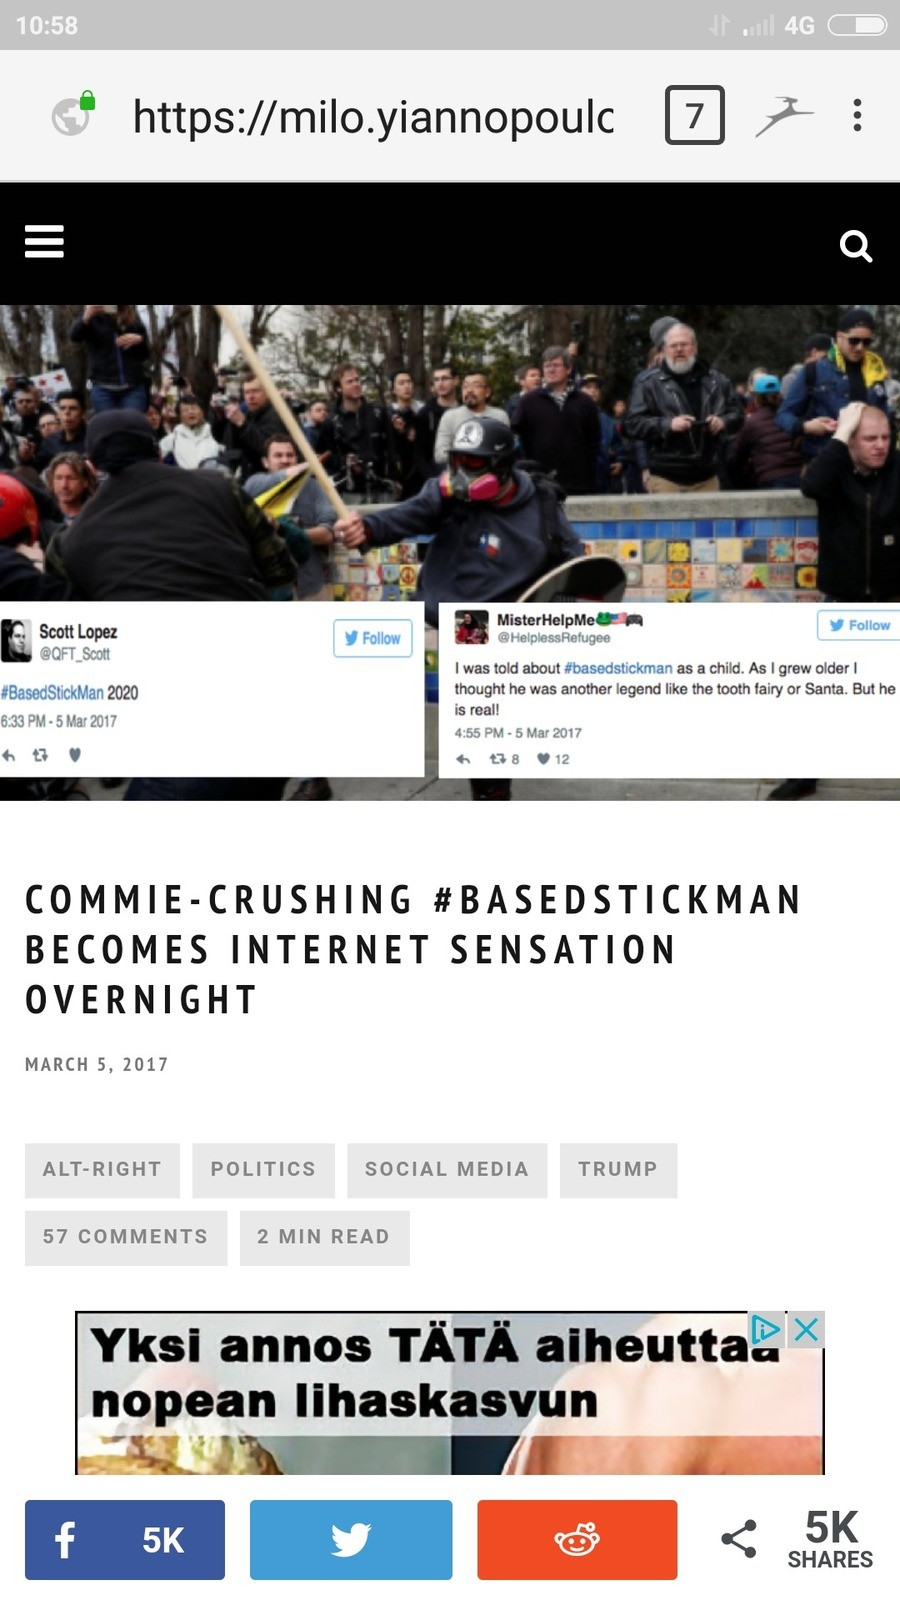 Milo writes about #BasedStickman. https://milo.yiannopoulos.net/2017/03/commie-crushing-basedstickman-becomes-internet-sensation-overnight/ join list: Political